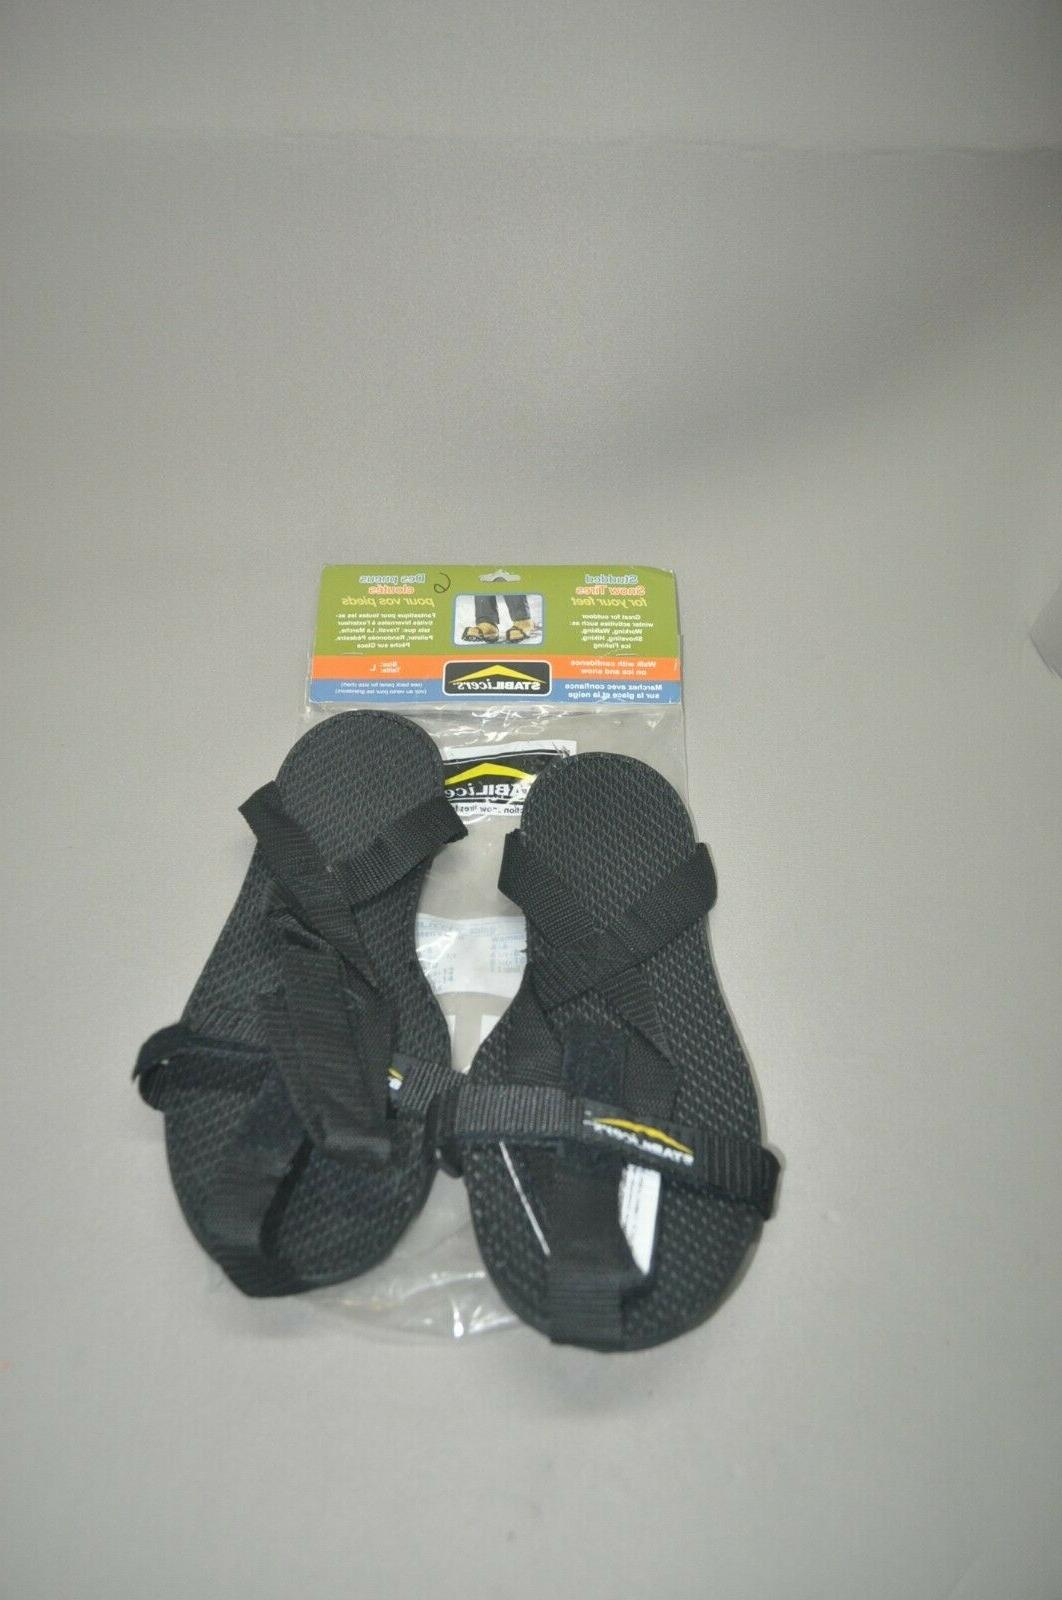 STABILICERS ICE OVER BOOTS XX LARGE 15-16 ICE SNOW NOS